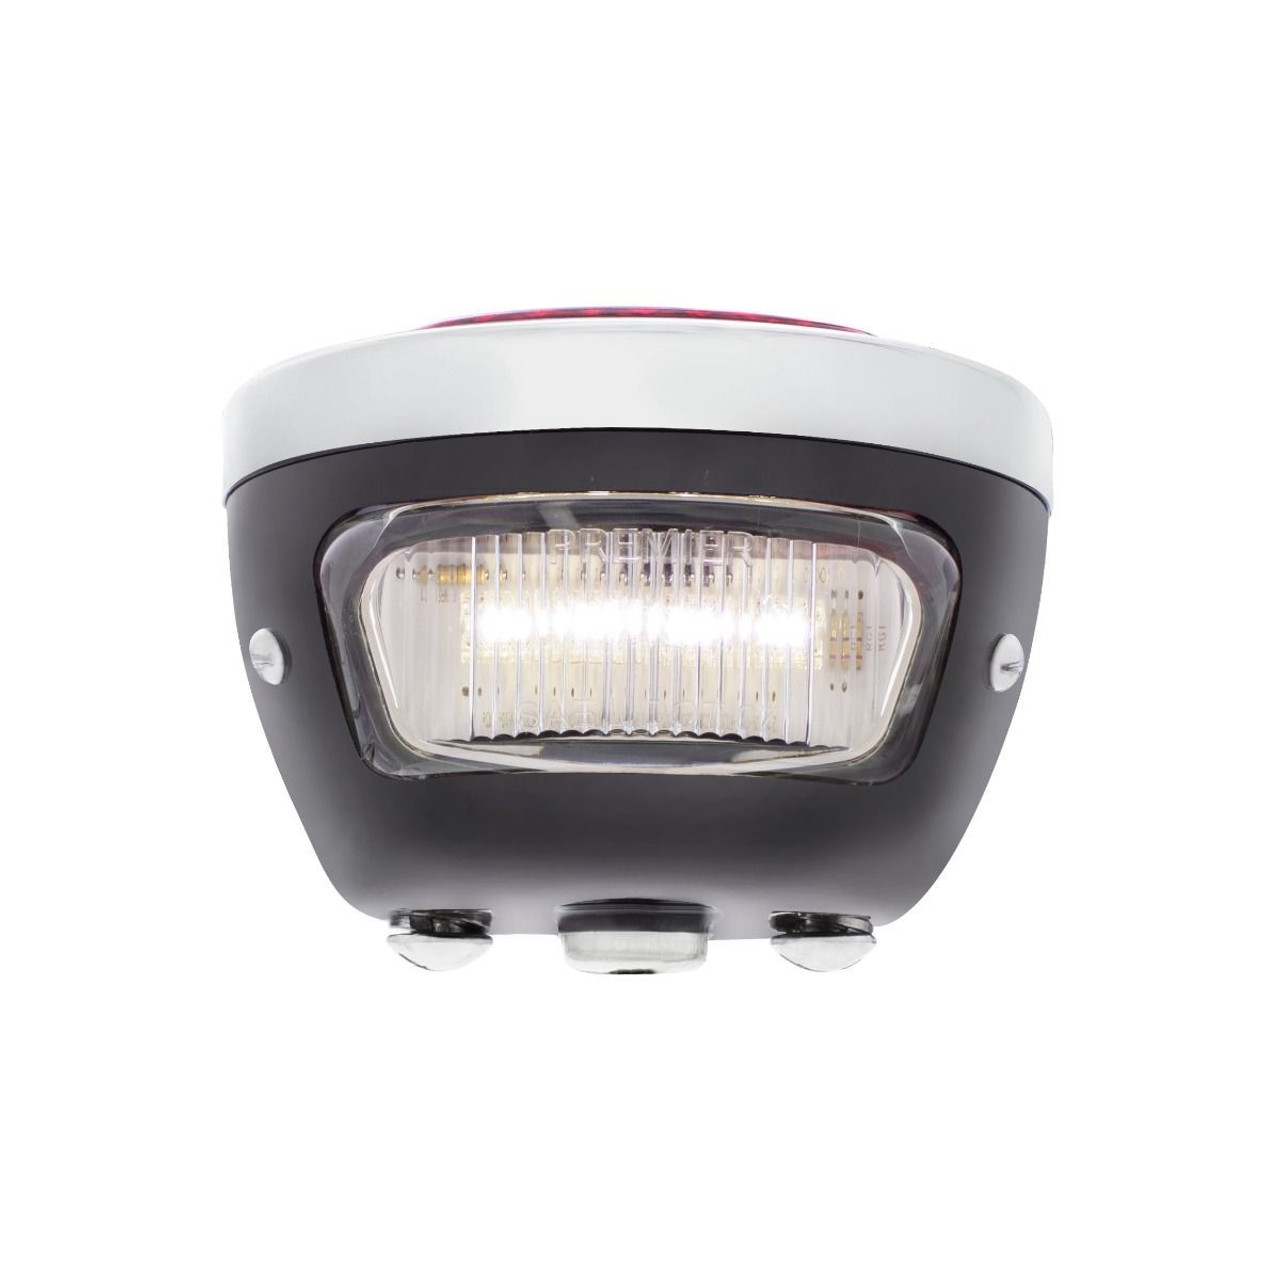 31 LED Sequential Tail Light, Black w/ Stainless Rim , 1928-31 Ford Car - Left/H